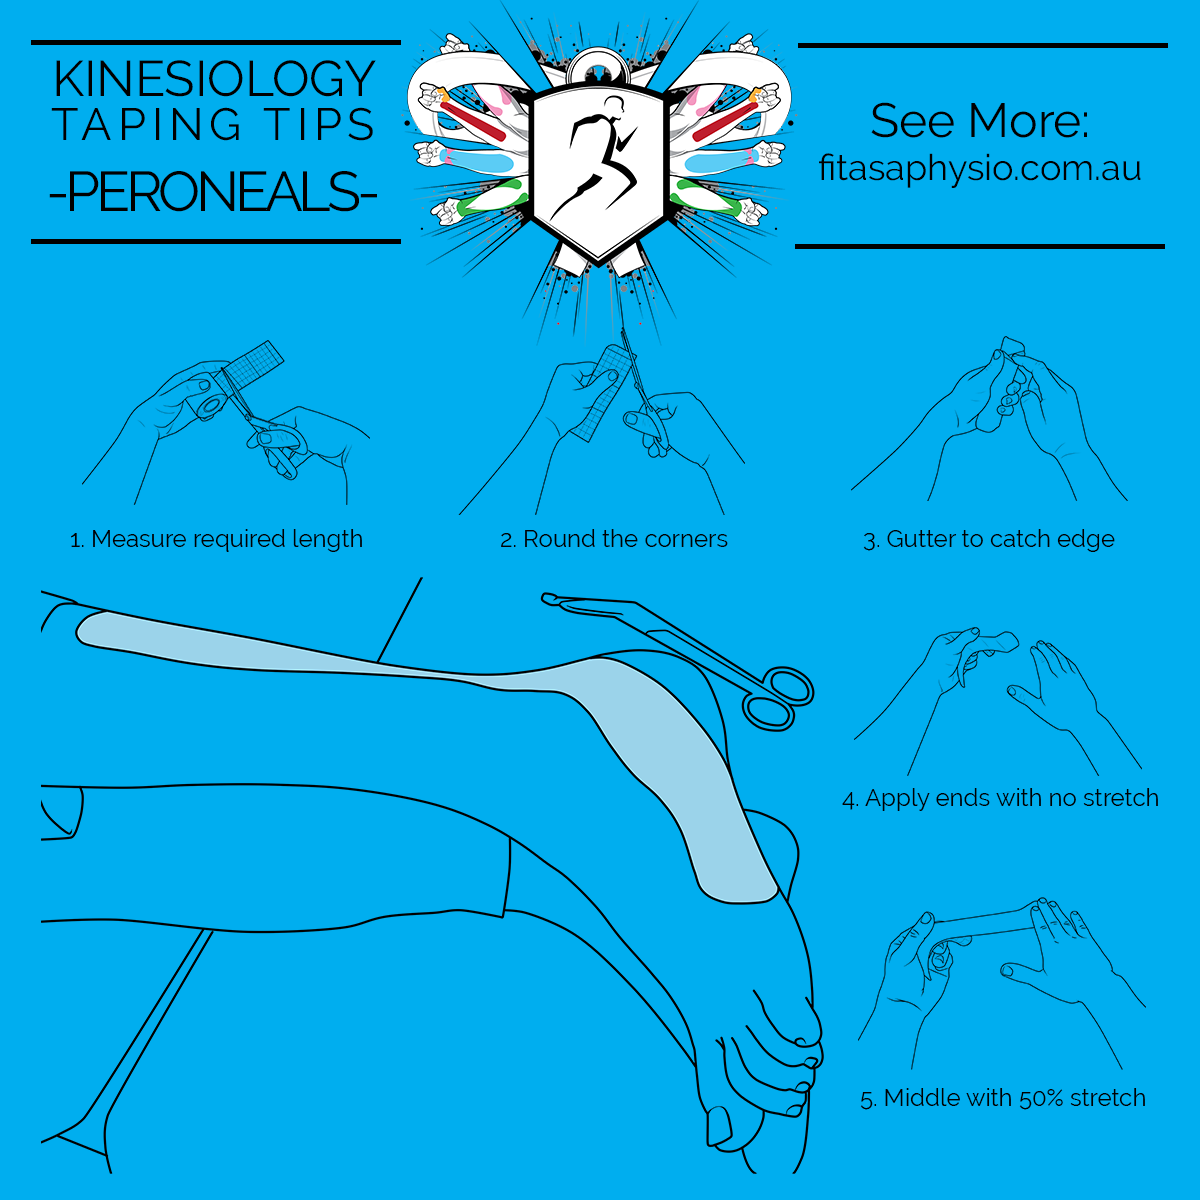 Kinesiology Taping Tips PERONEALS INFOGRAPHIC